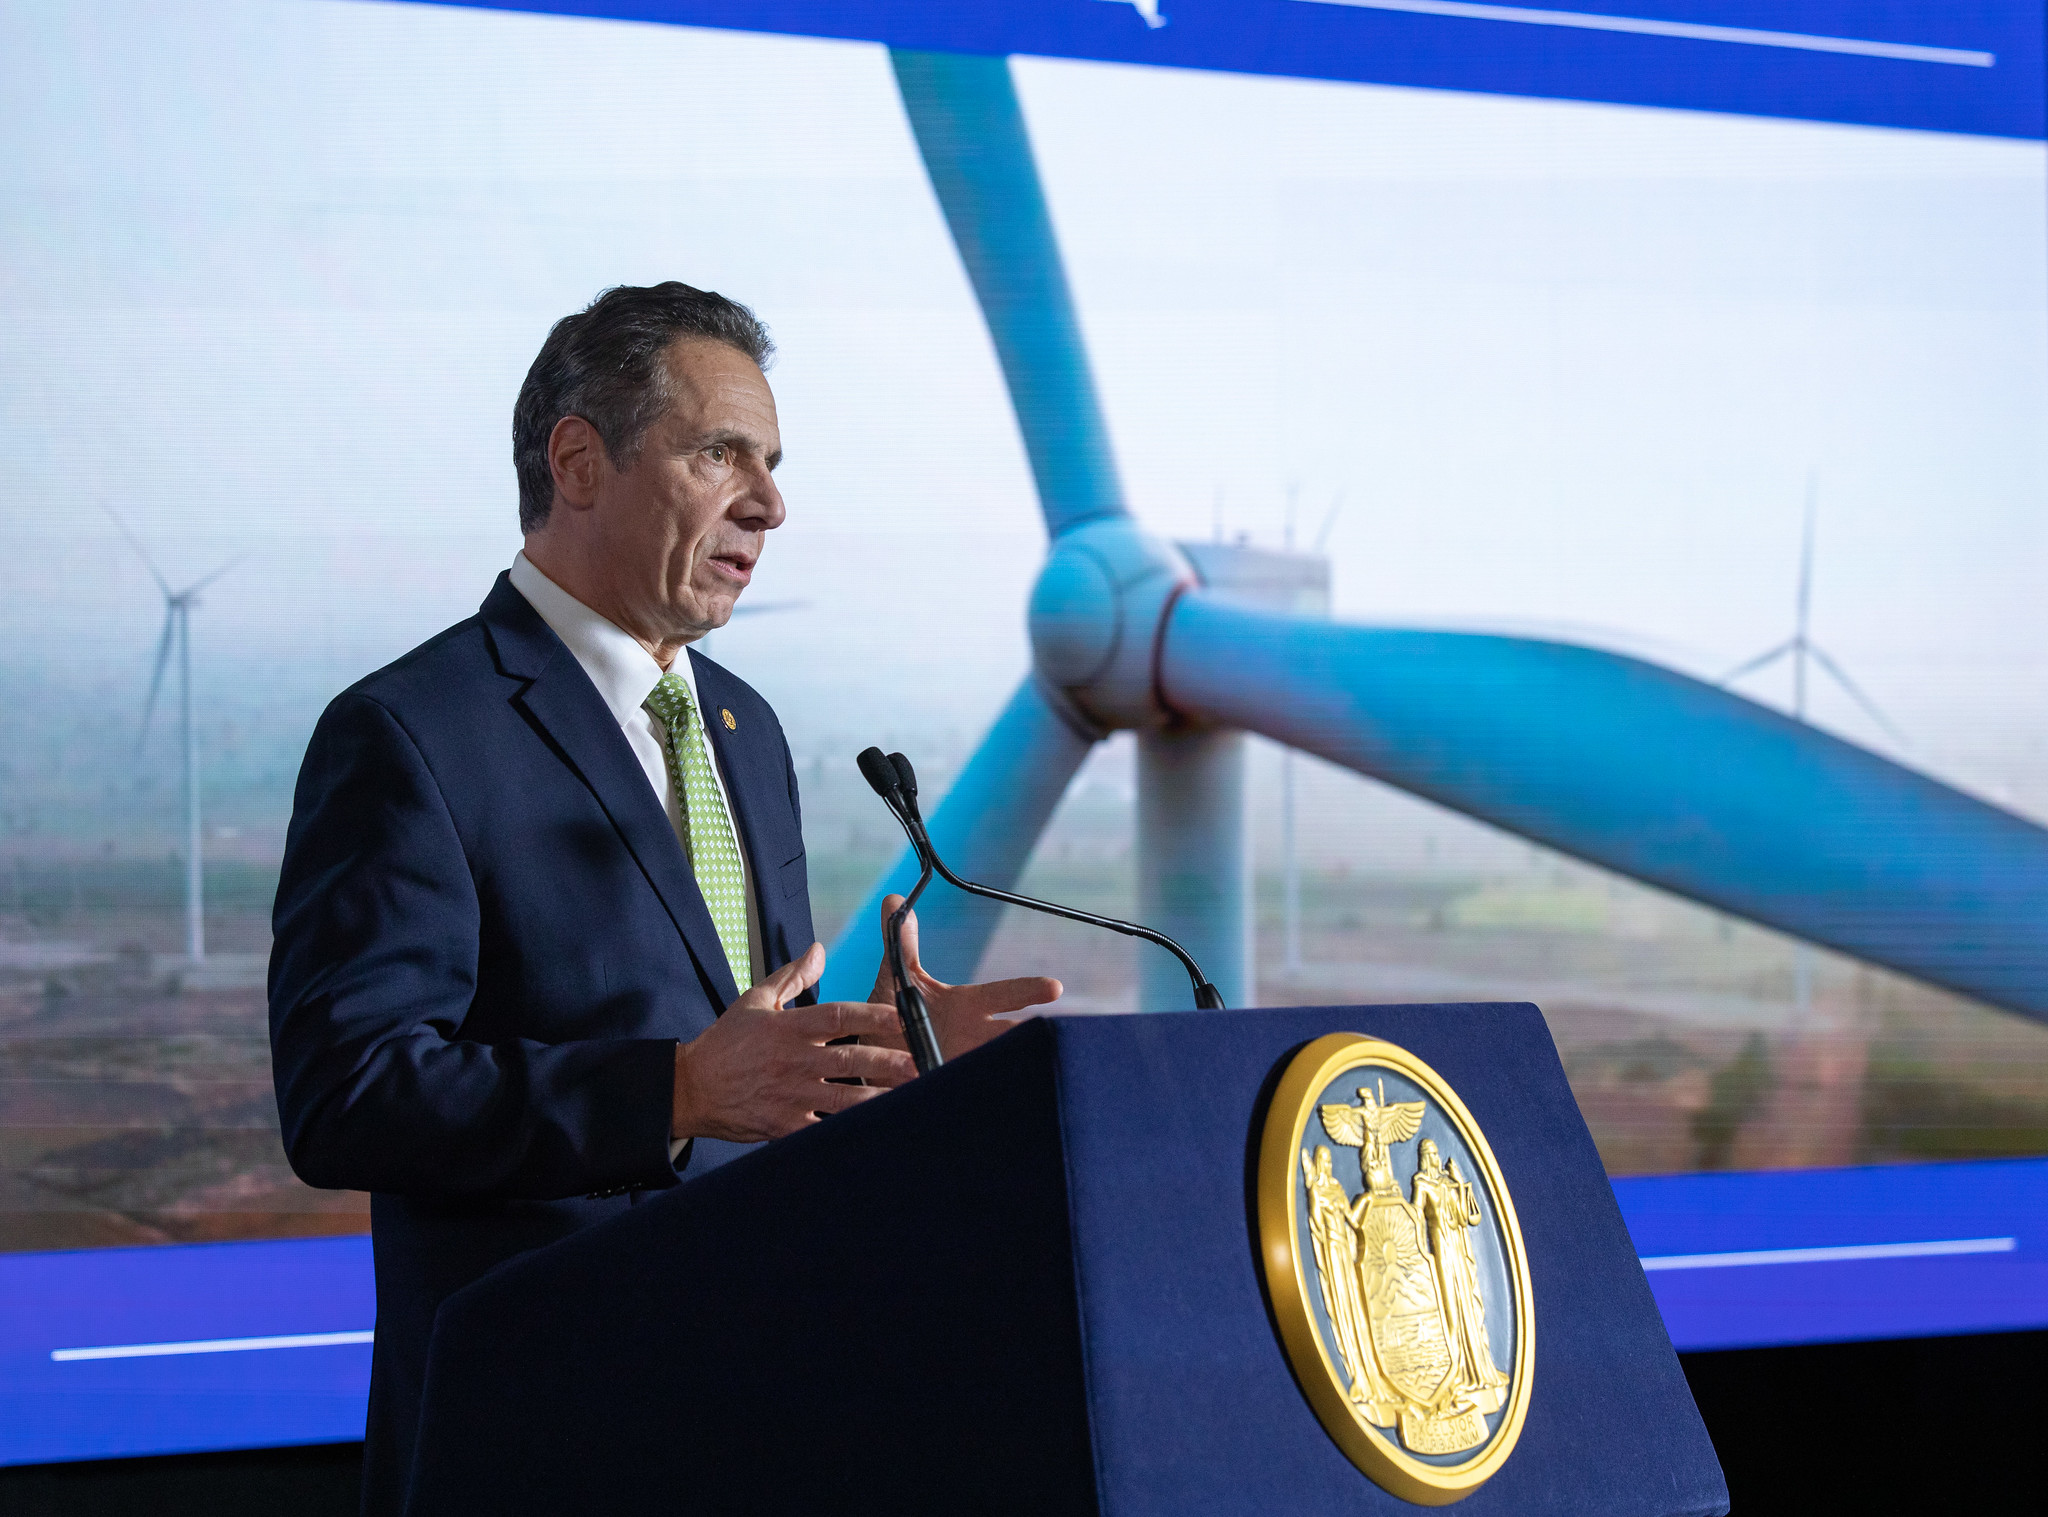 Gov. Cuomo Unveils Ambitious Green Energy Program For New York; Groups Praise Effort, Push For More